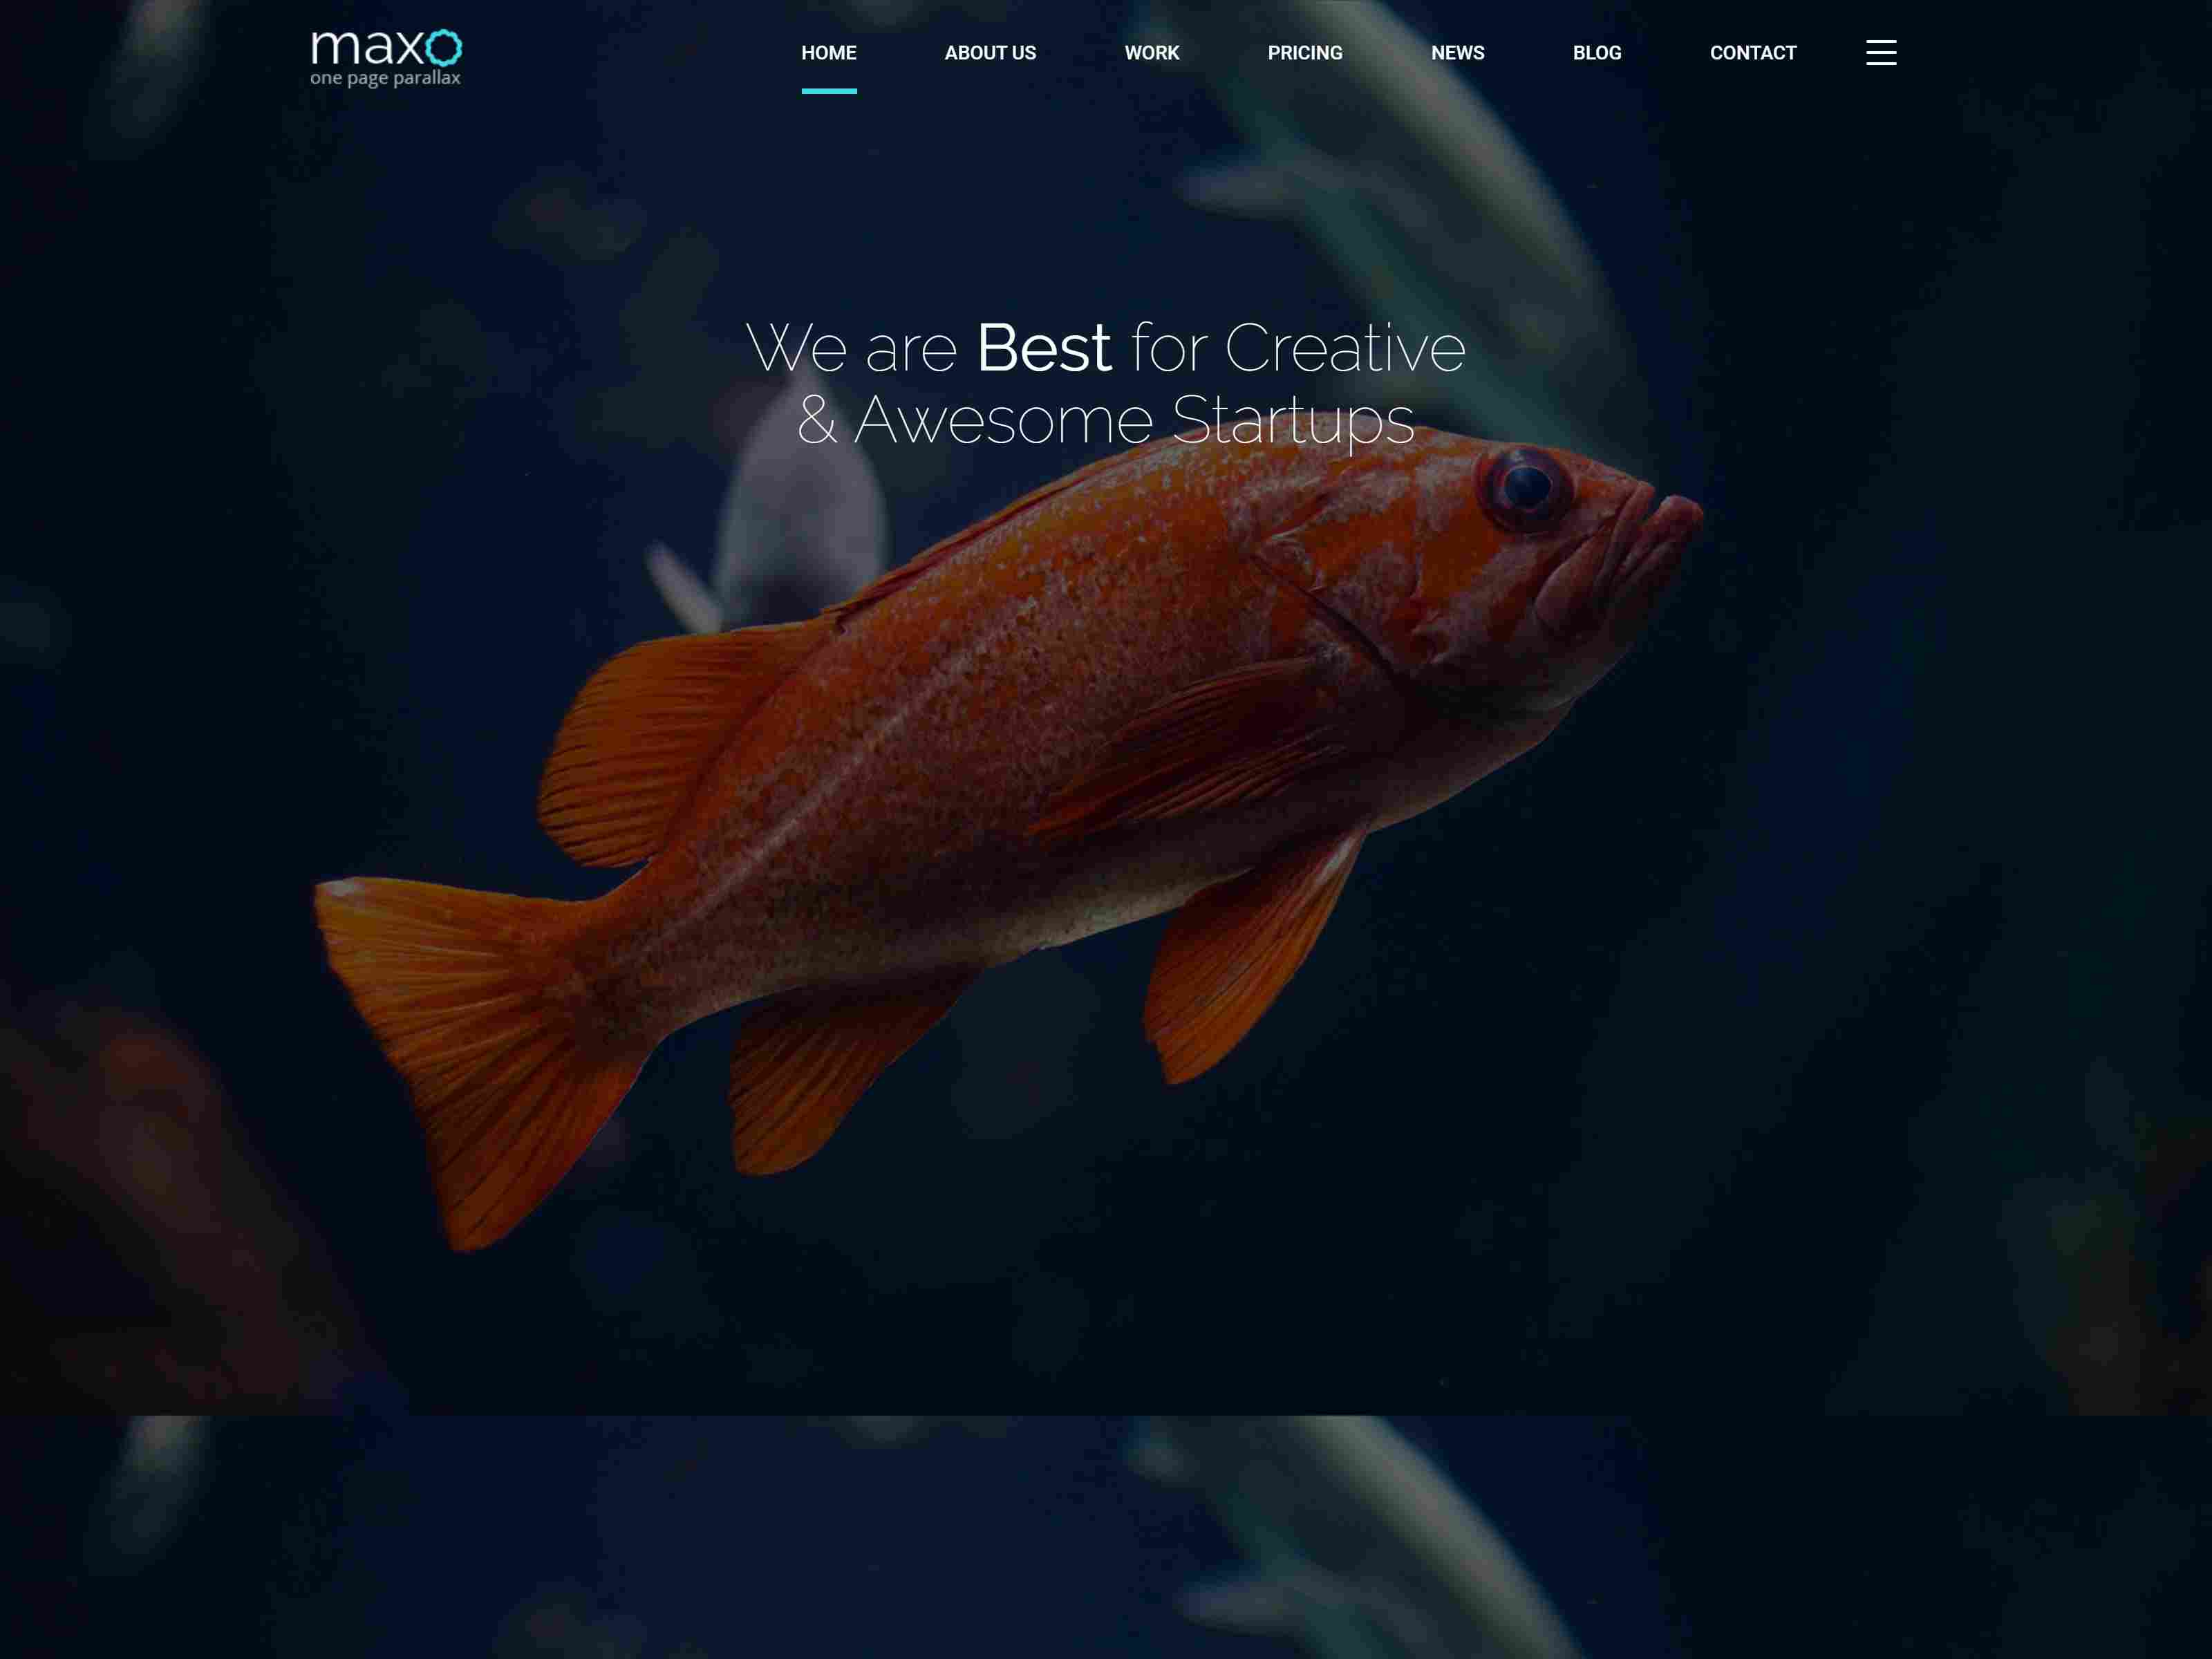 Maxo - One Page Parallax Joomla Template